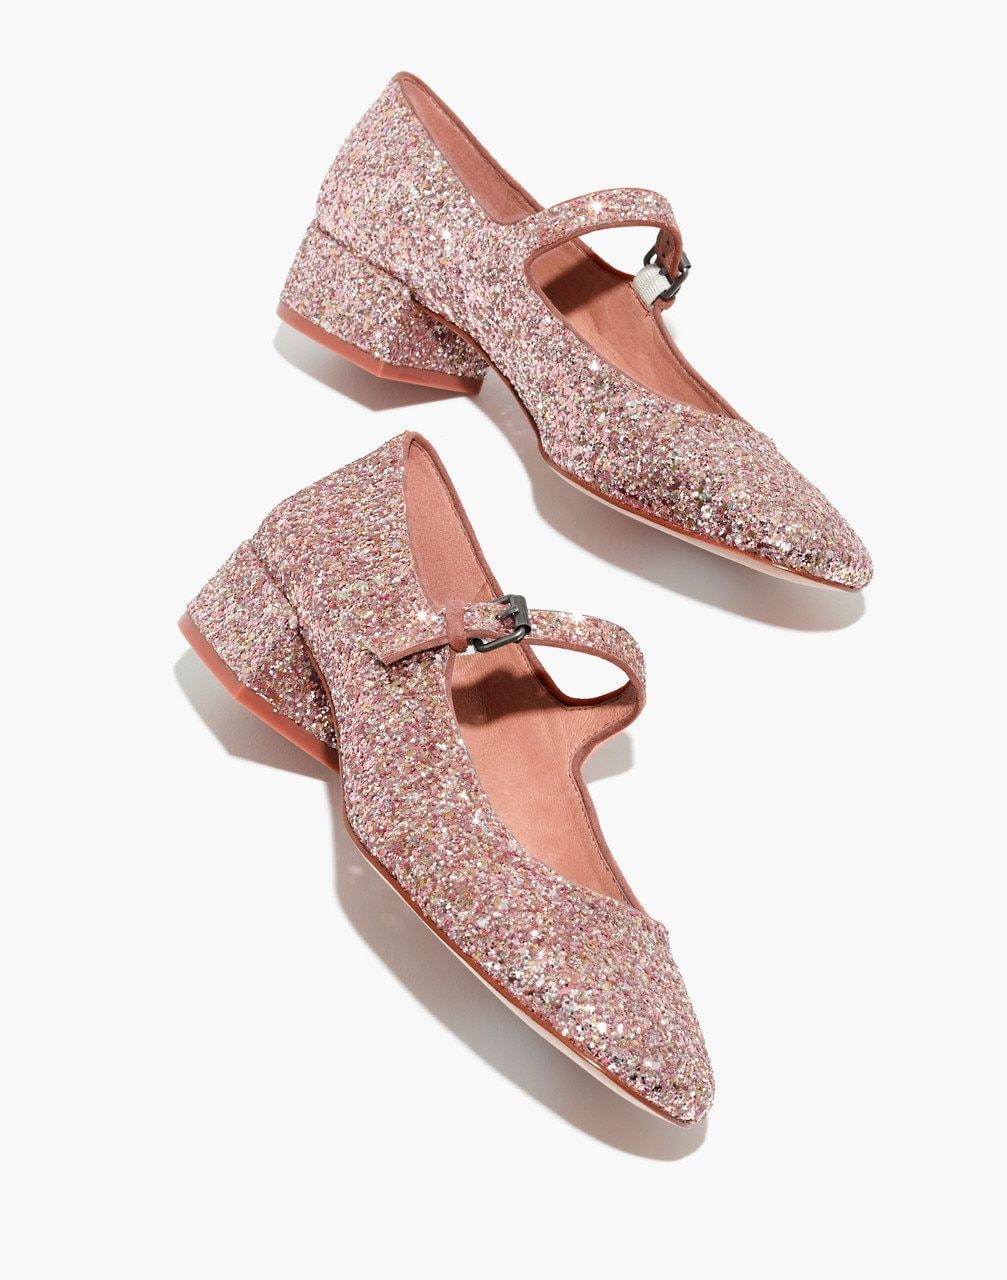 These sparkly shoes may be all you ever need for your forever holiday wardrobe. The Delilah Mary Jane in glitter by Madewell, $90 at  Madewell .